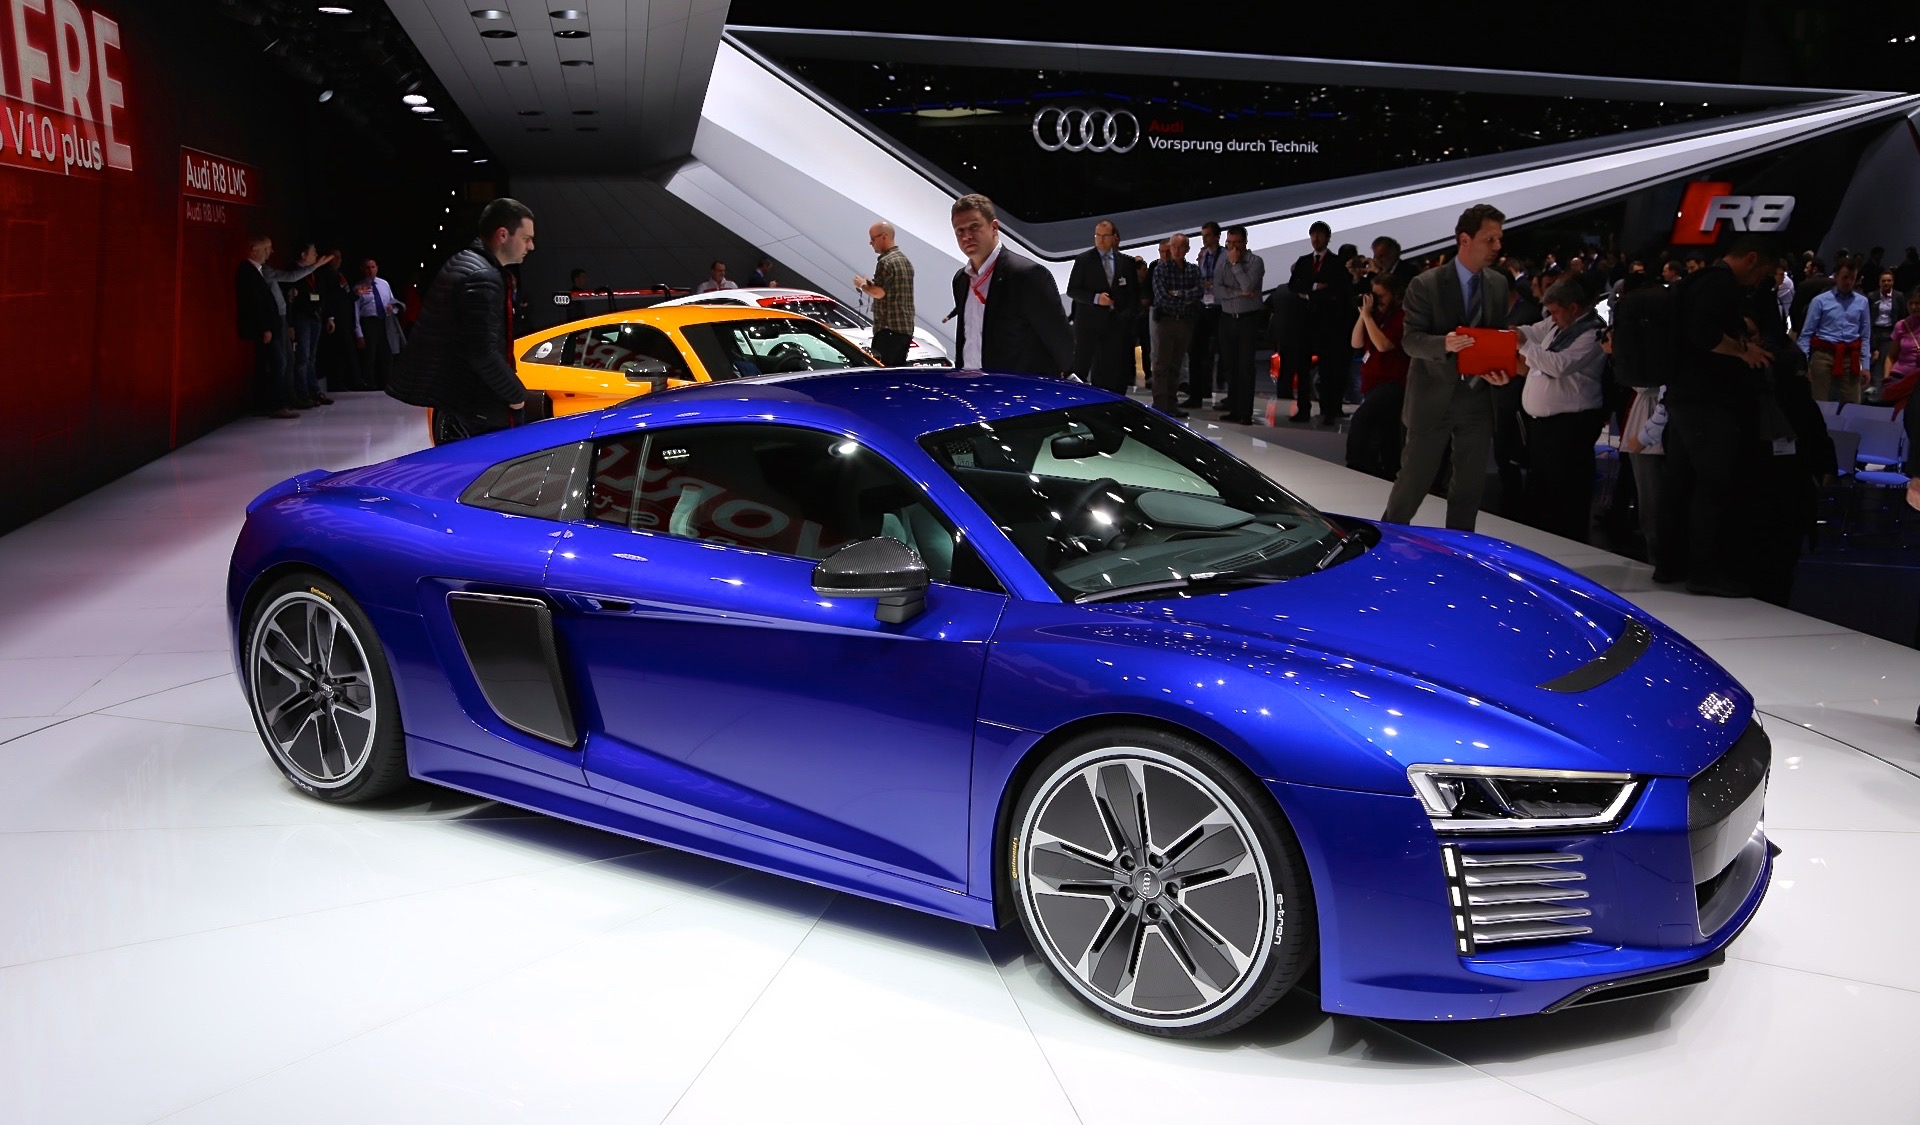 2017 Audi R8 etron AllElectric Sports Car Live Photos From